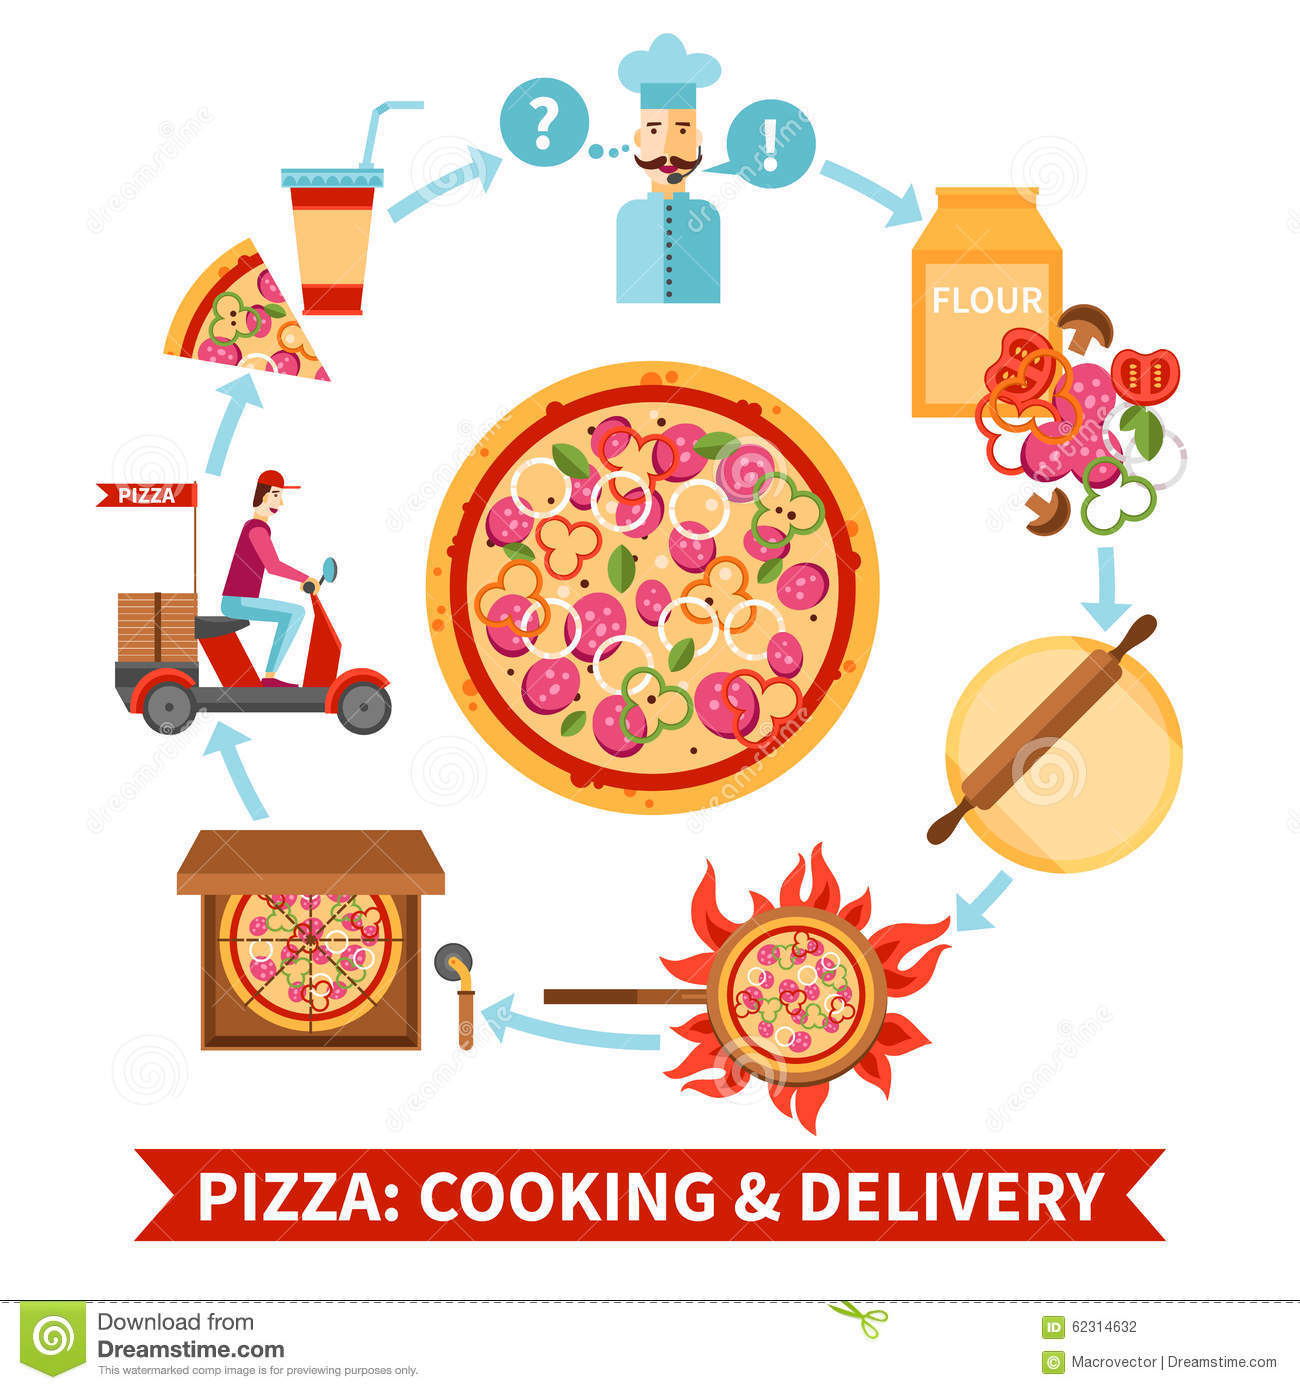 Pizza delivery process design reqrirement